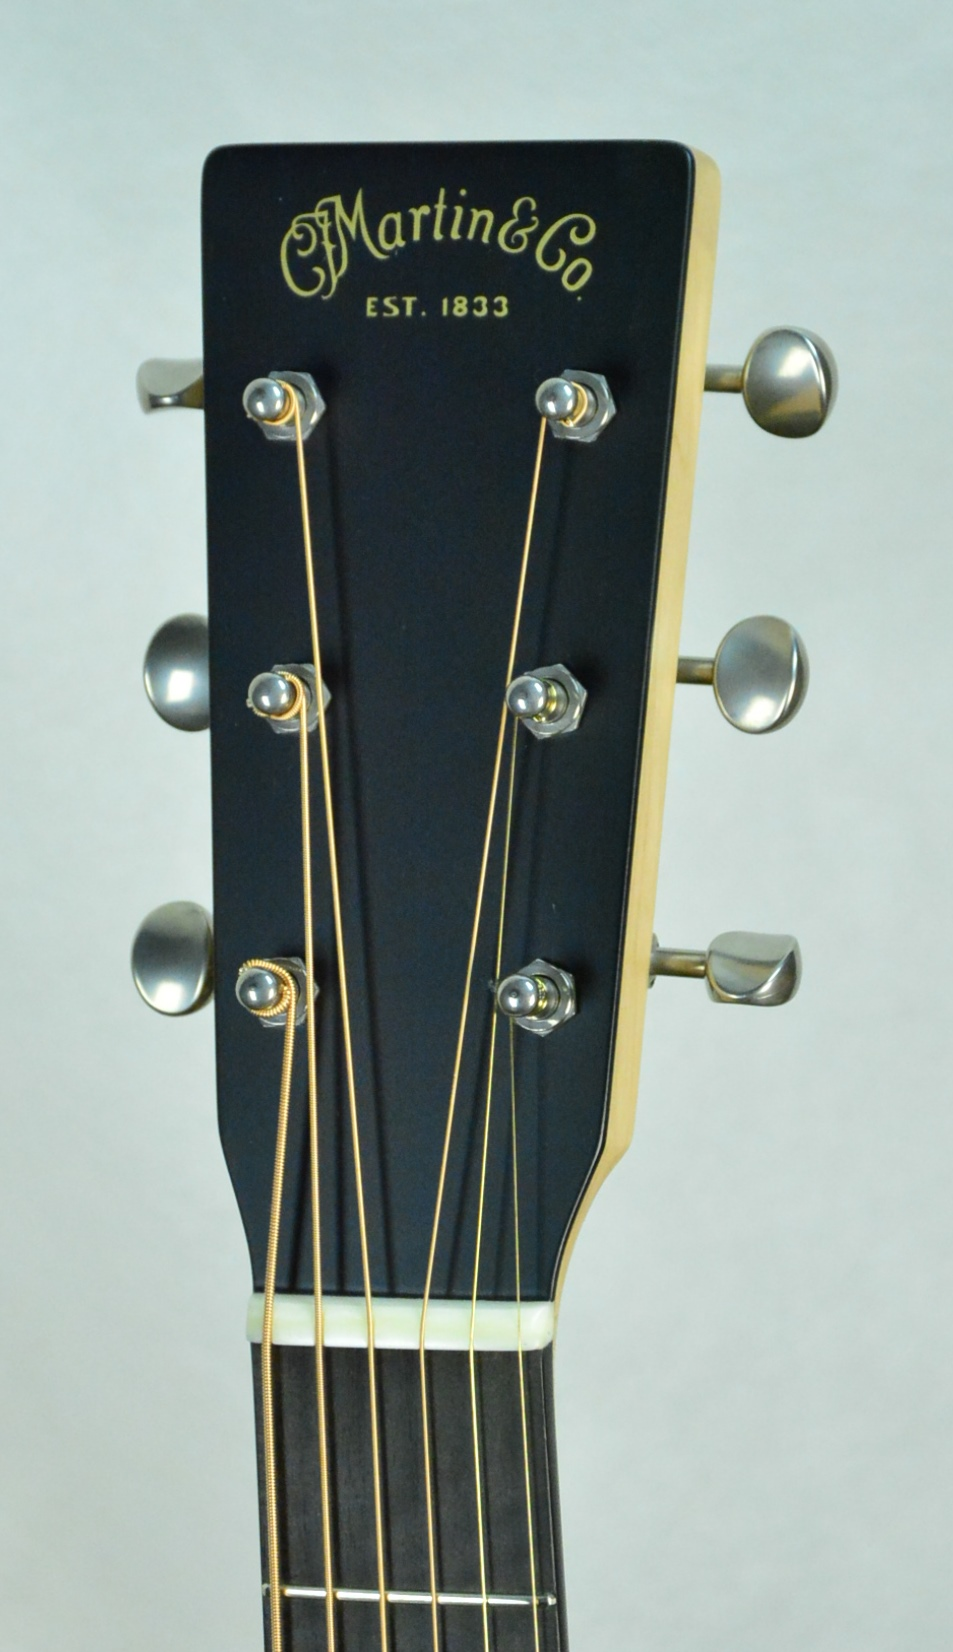 Q-2648024 S-1928826 OM Black Walnut- Maple Neck (4).JPG